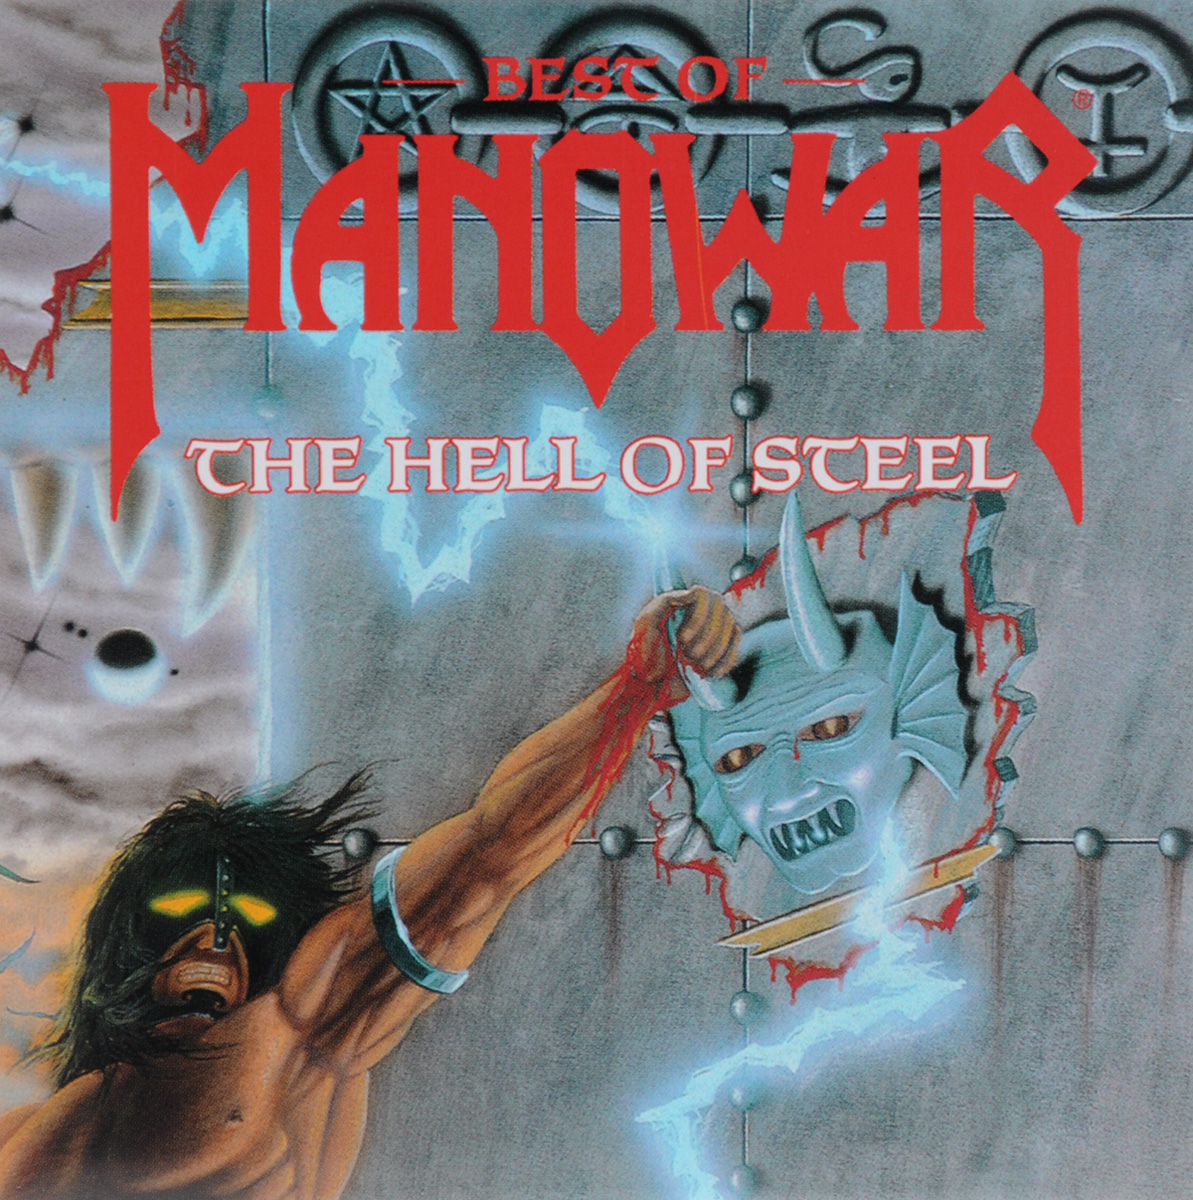 Manowar Manowar. Best Of Manowar. The Hell Of Steel